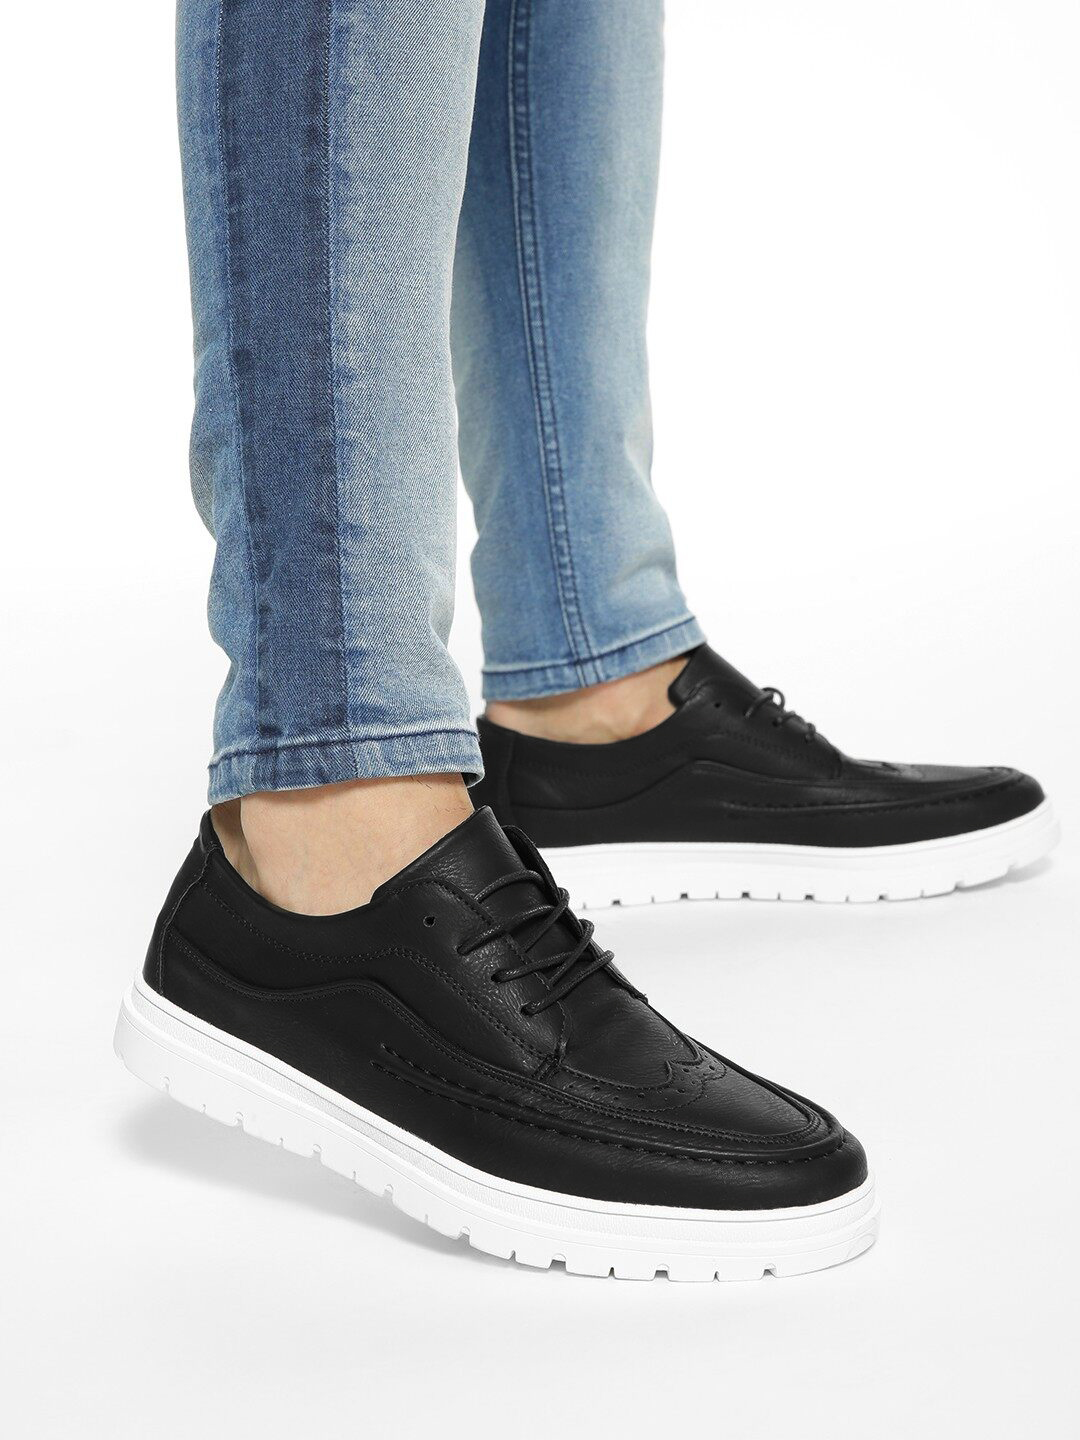 KOOVS Black Brogue Punches Cleated Sole Shoes 1